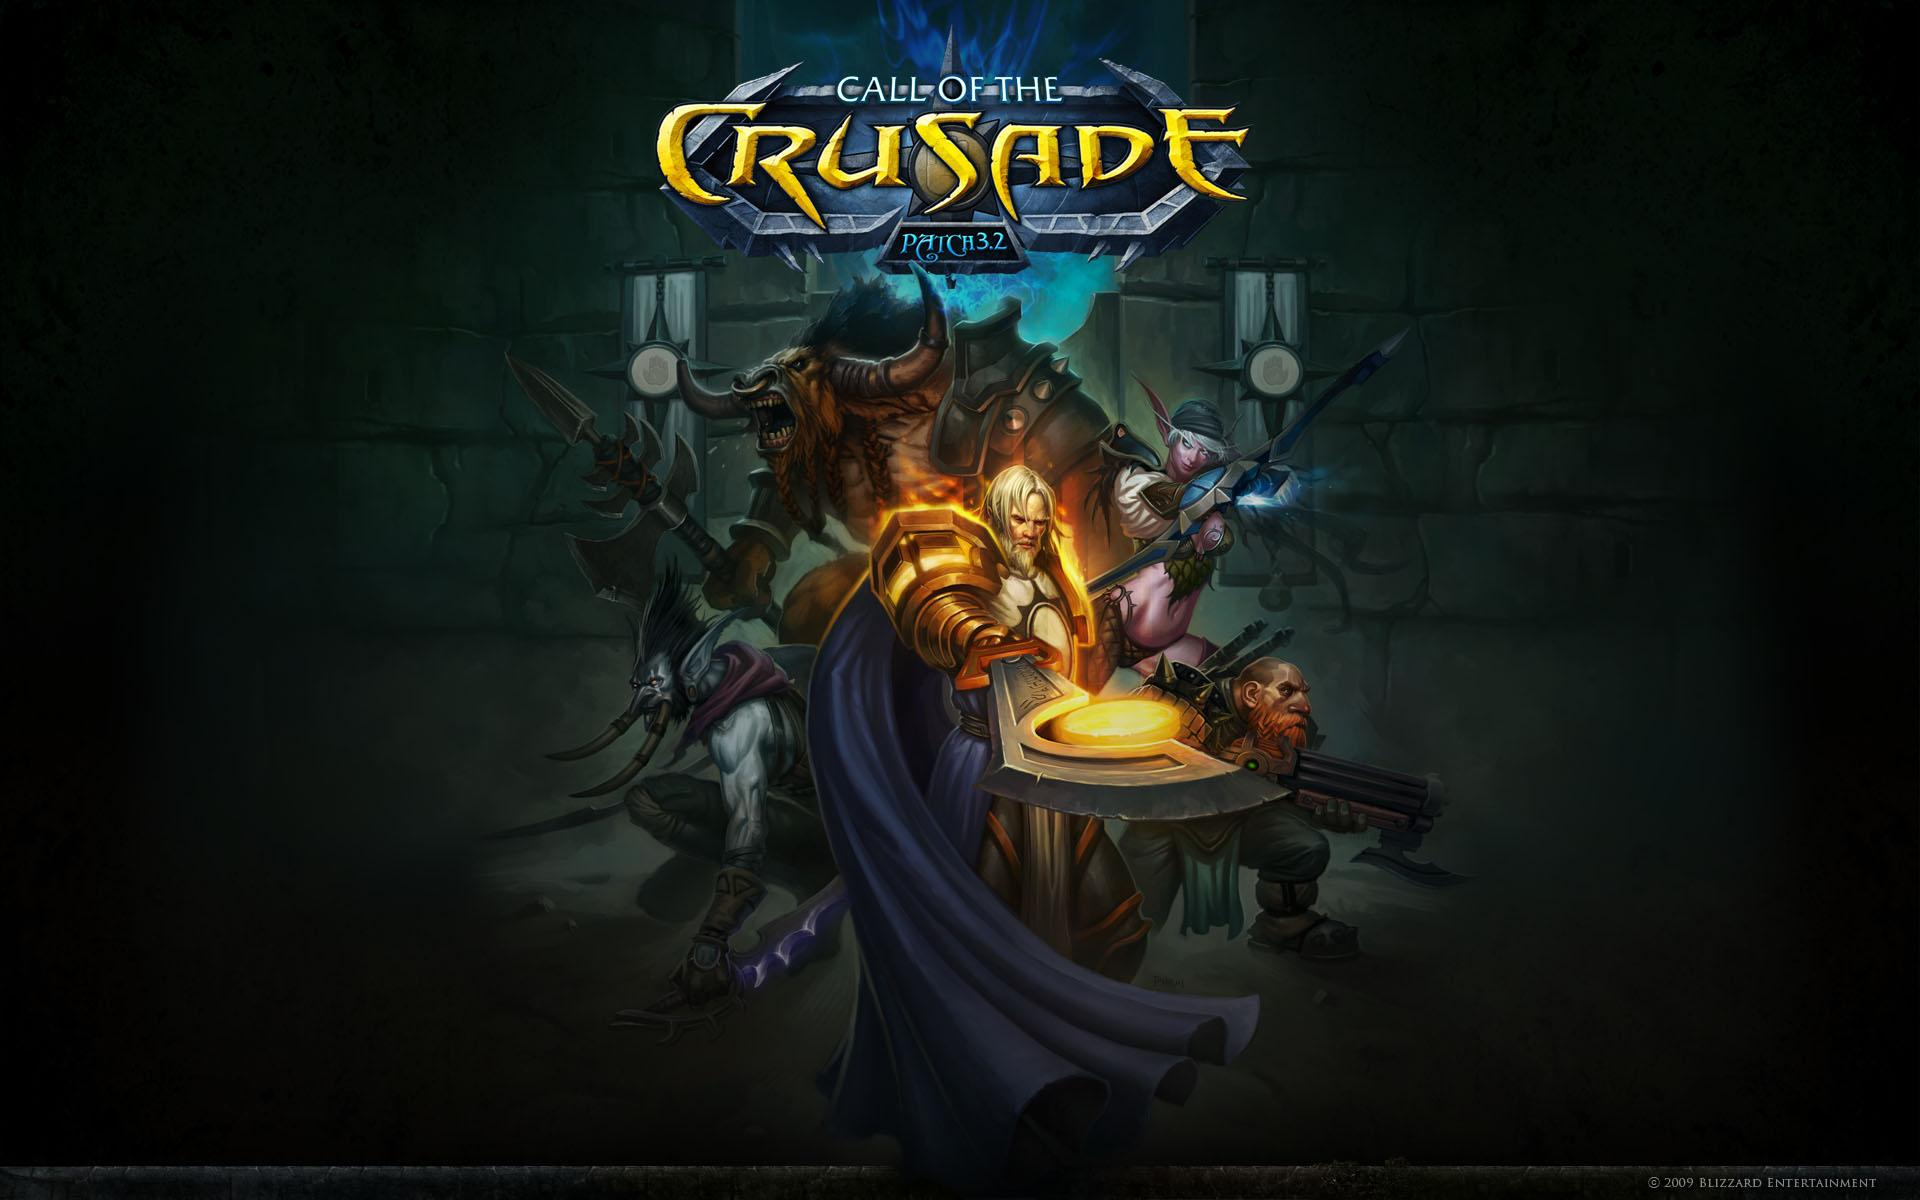 Обои World of Warcraft: Call of the crusade - patch 3.2 1920x1200